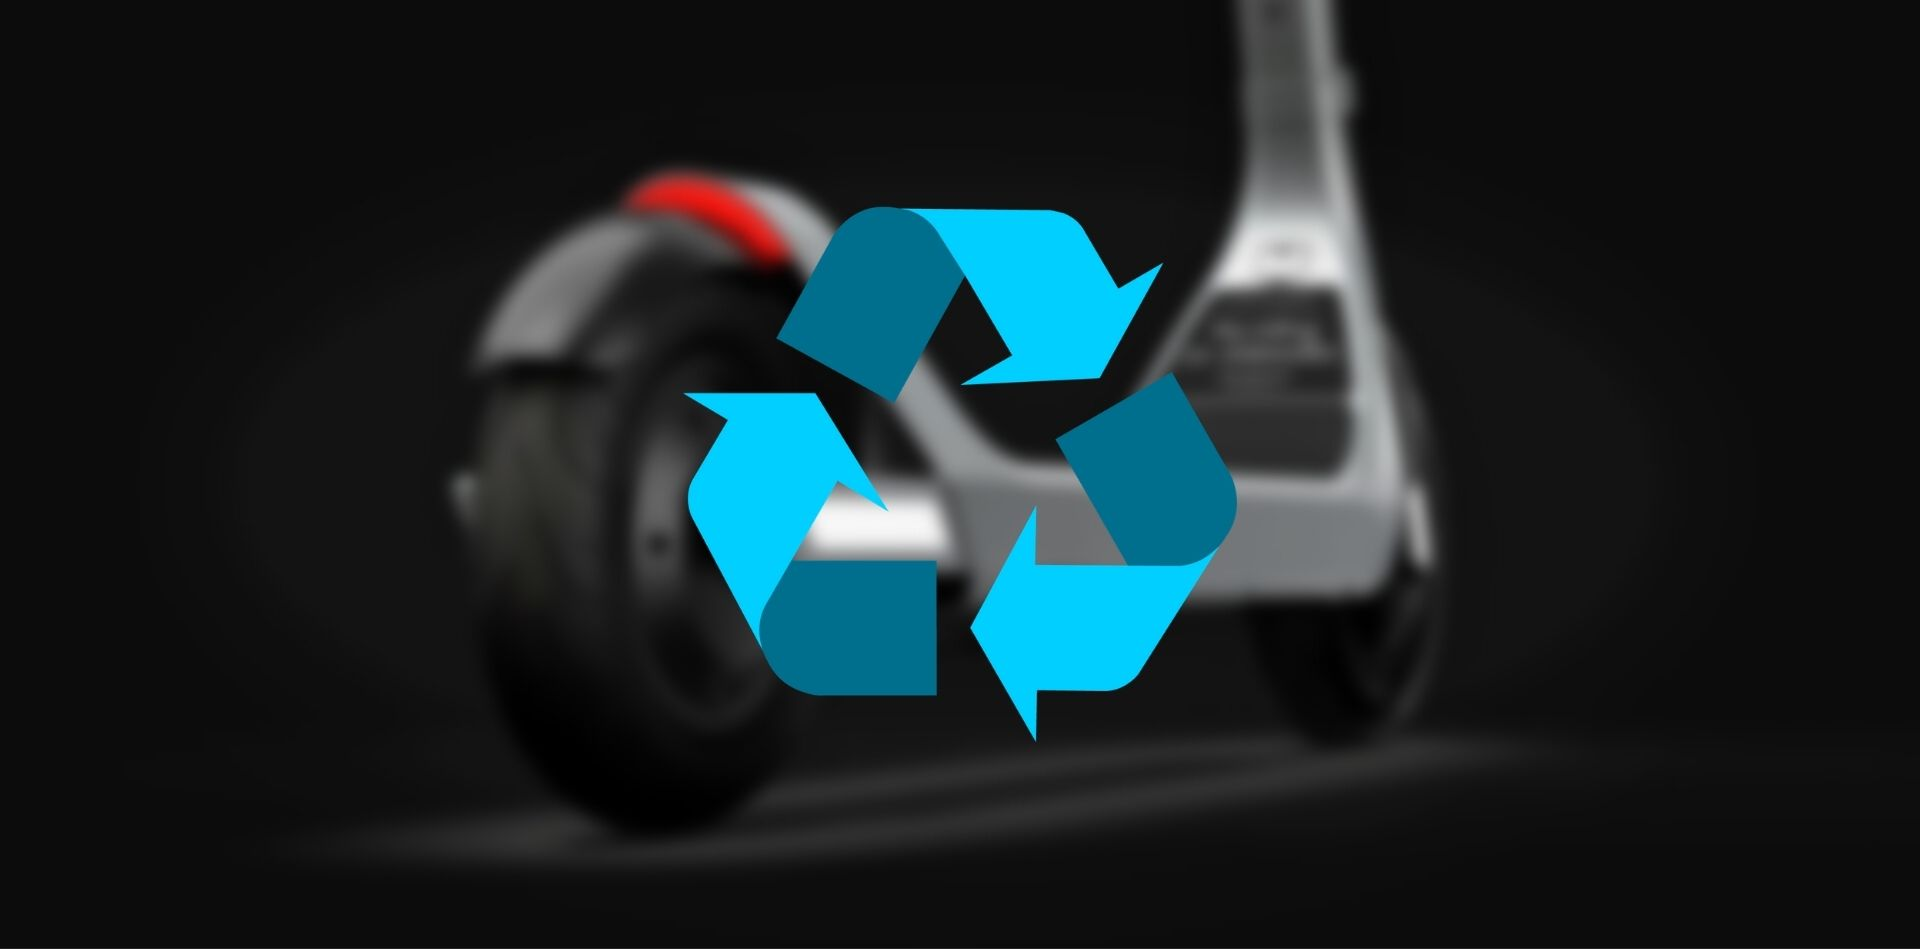 Recycling symbol on top of vehicle blurred in background